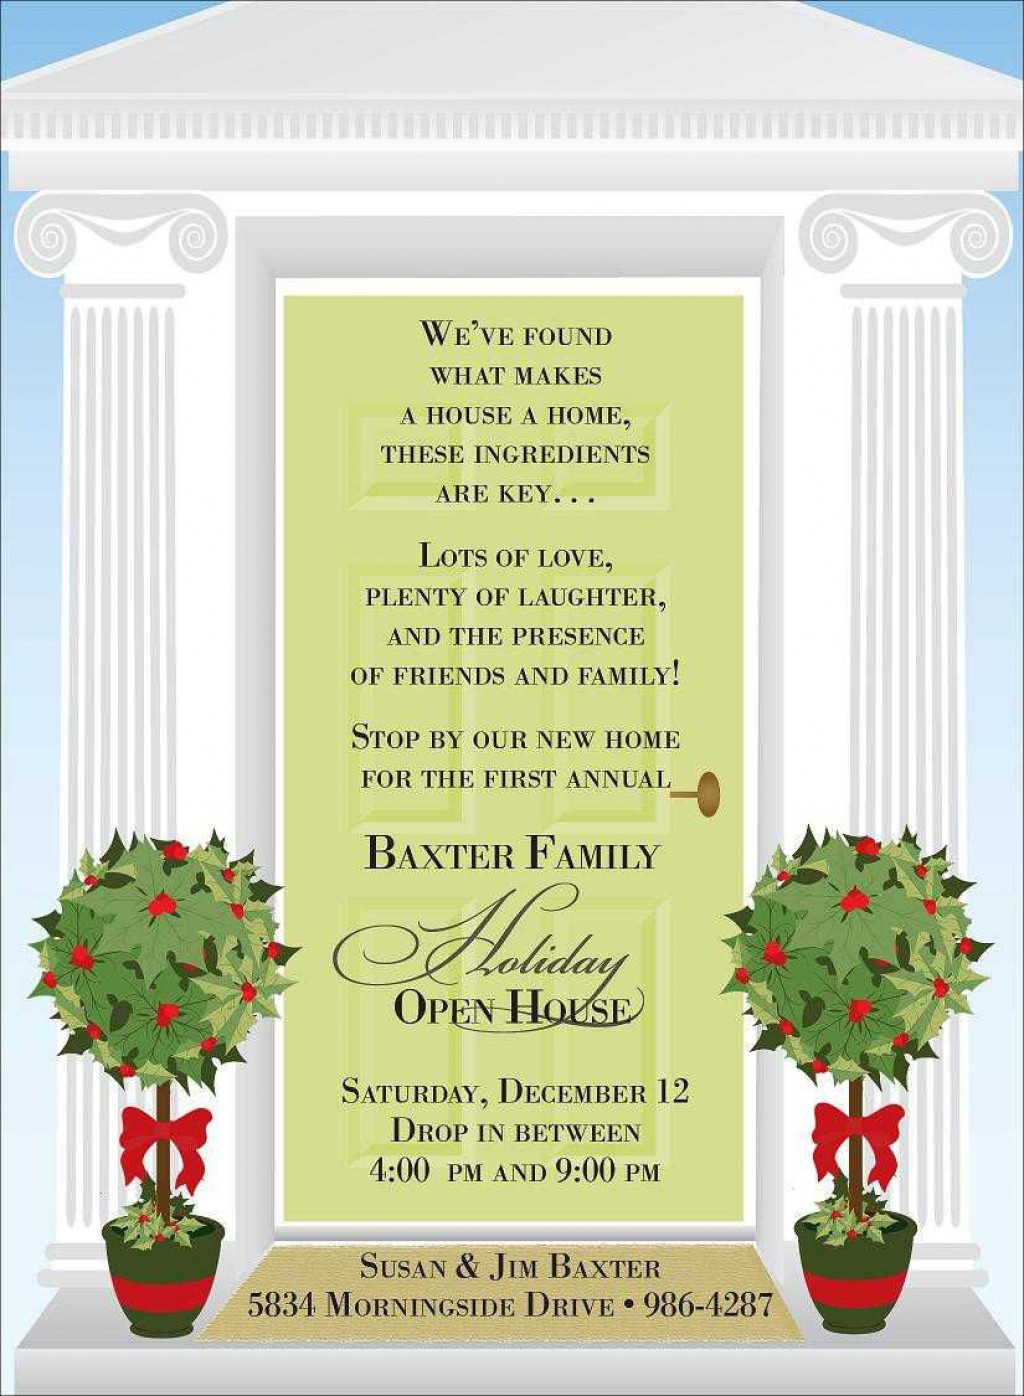 007 Formidable Holiday Open House Invitation Template Concept  Christma Free Printable Wording IdeaLarge